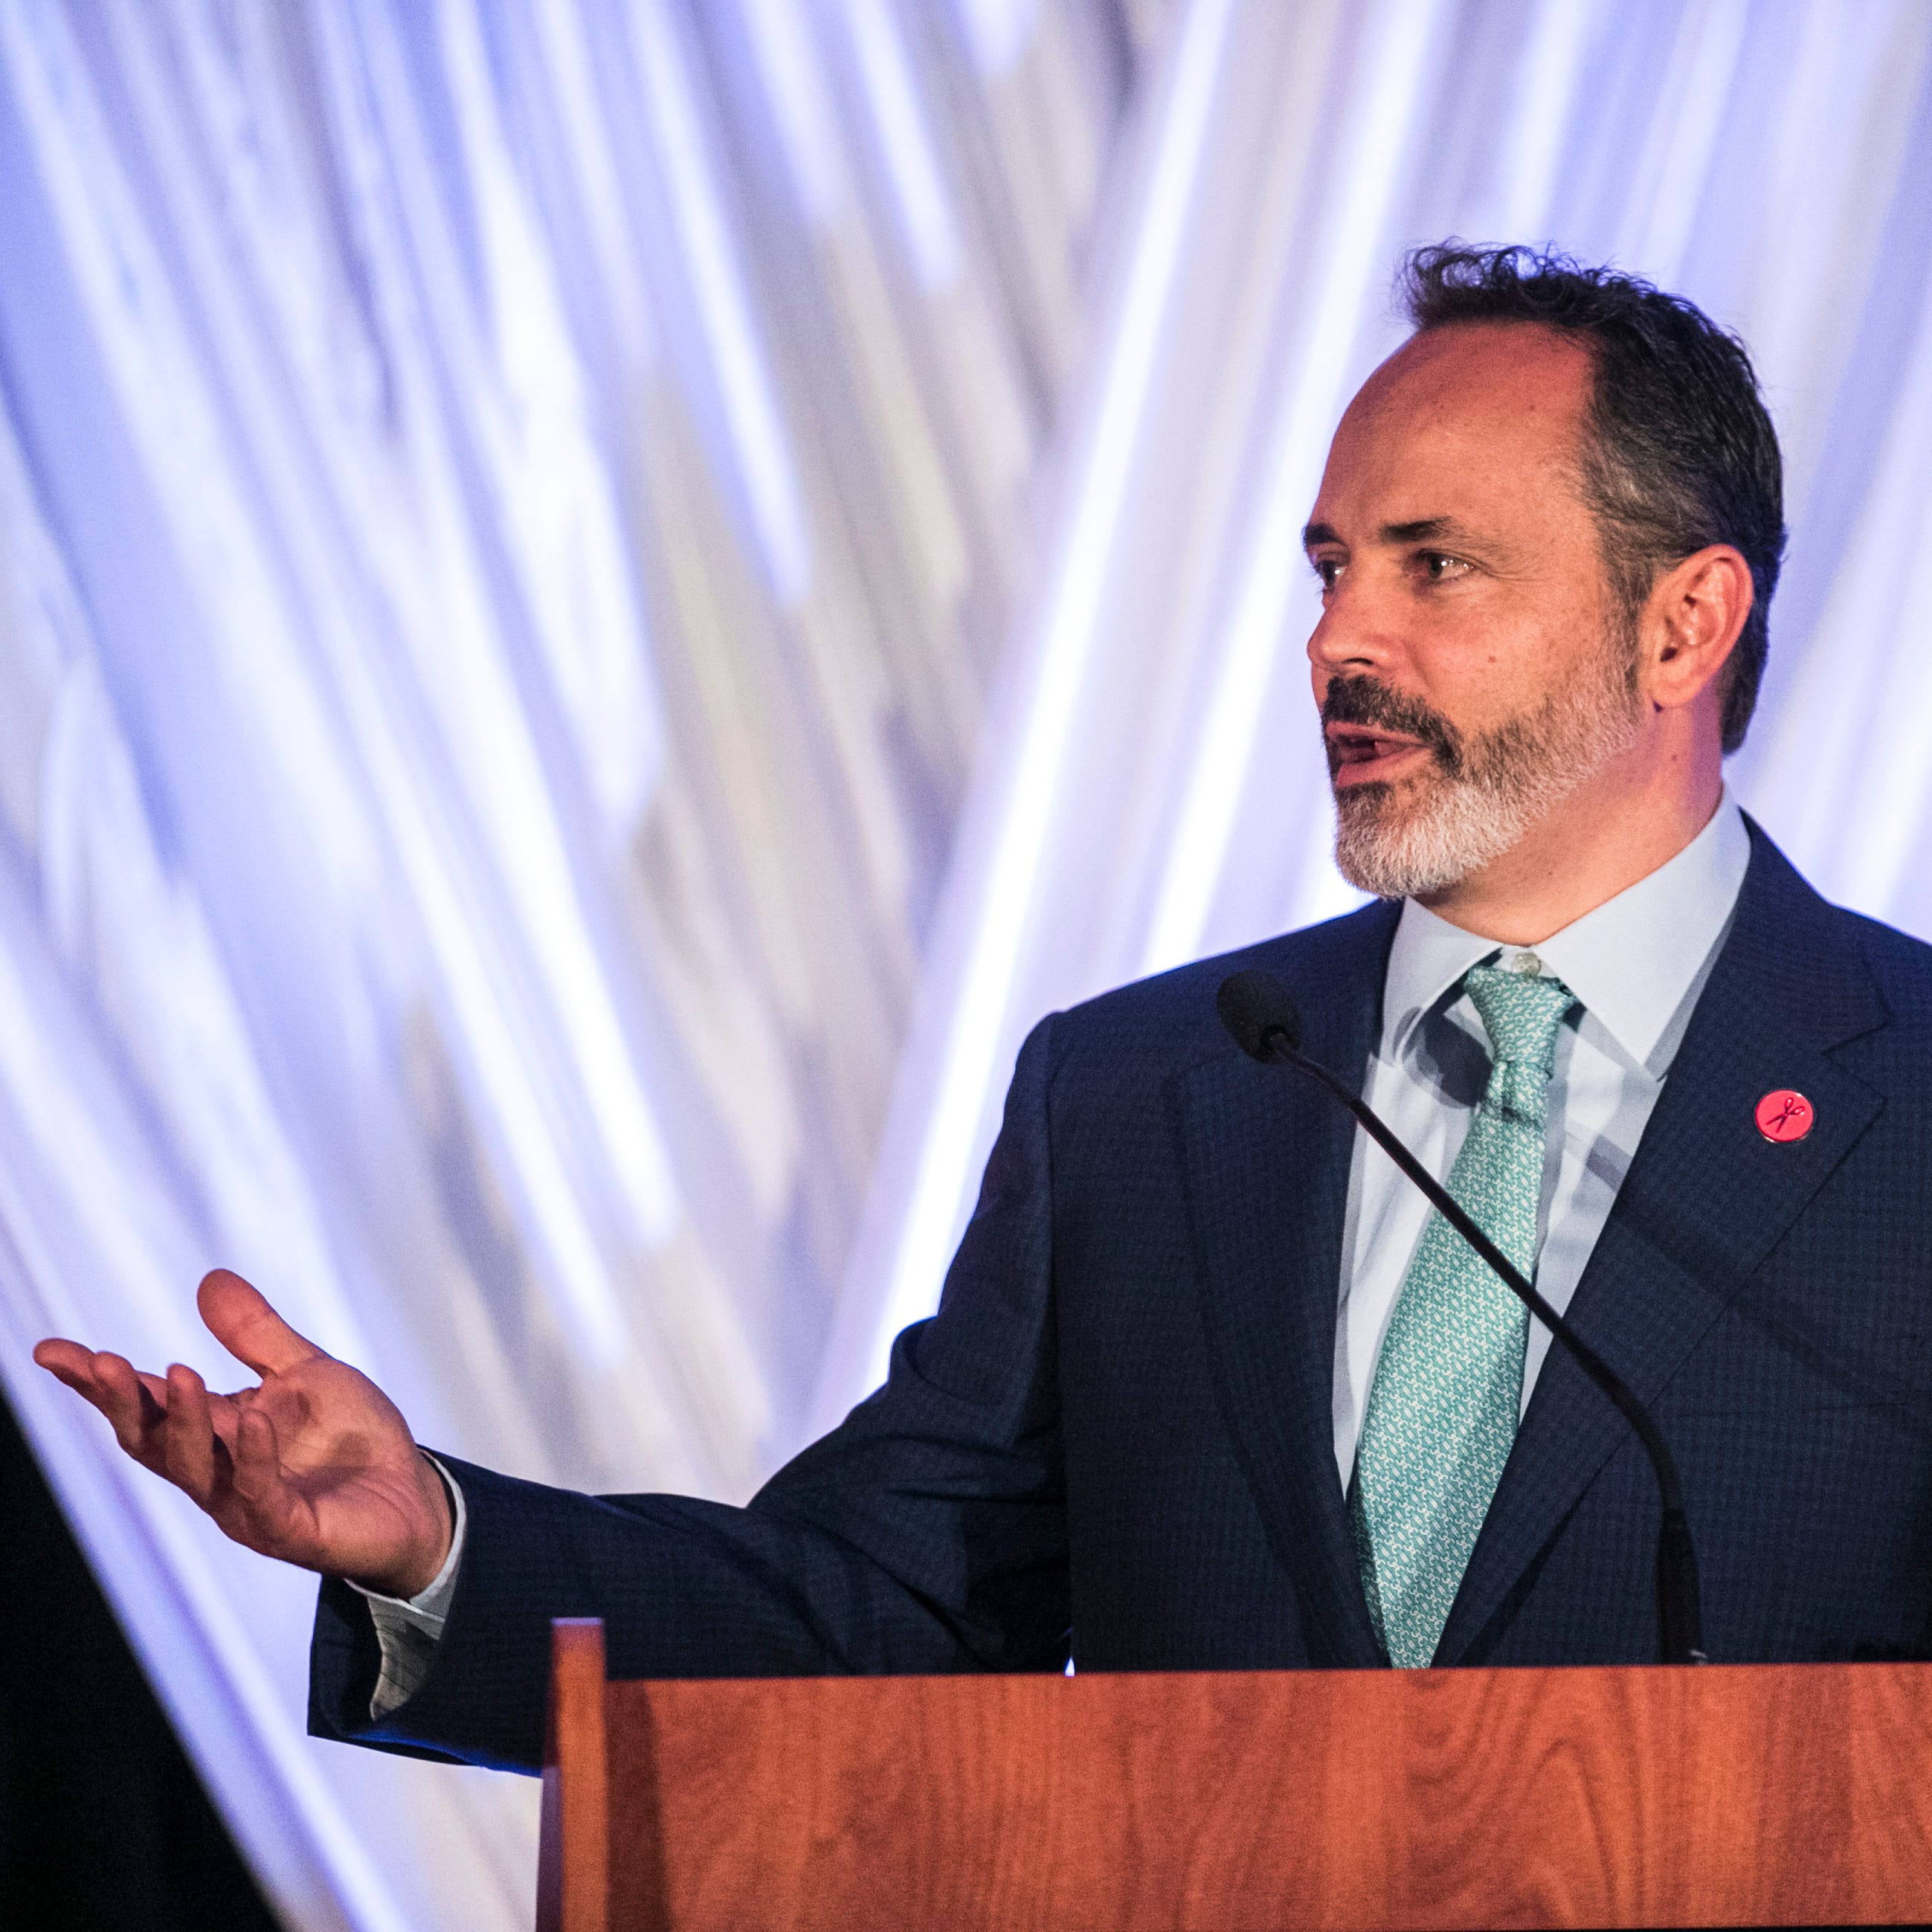 Here are the favorites for possible Matt Bevin running mates